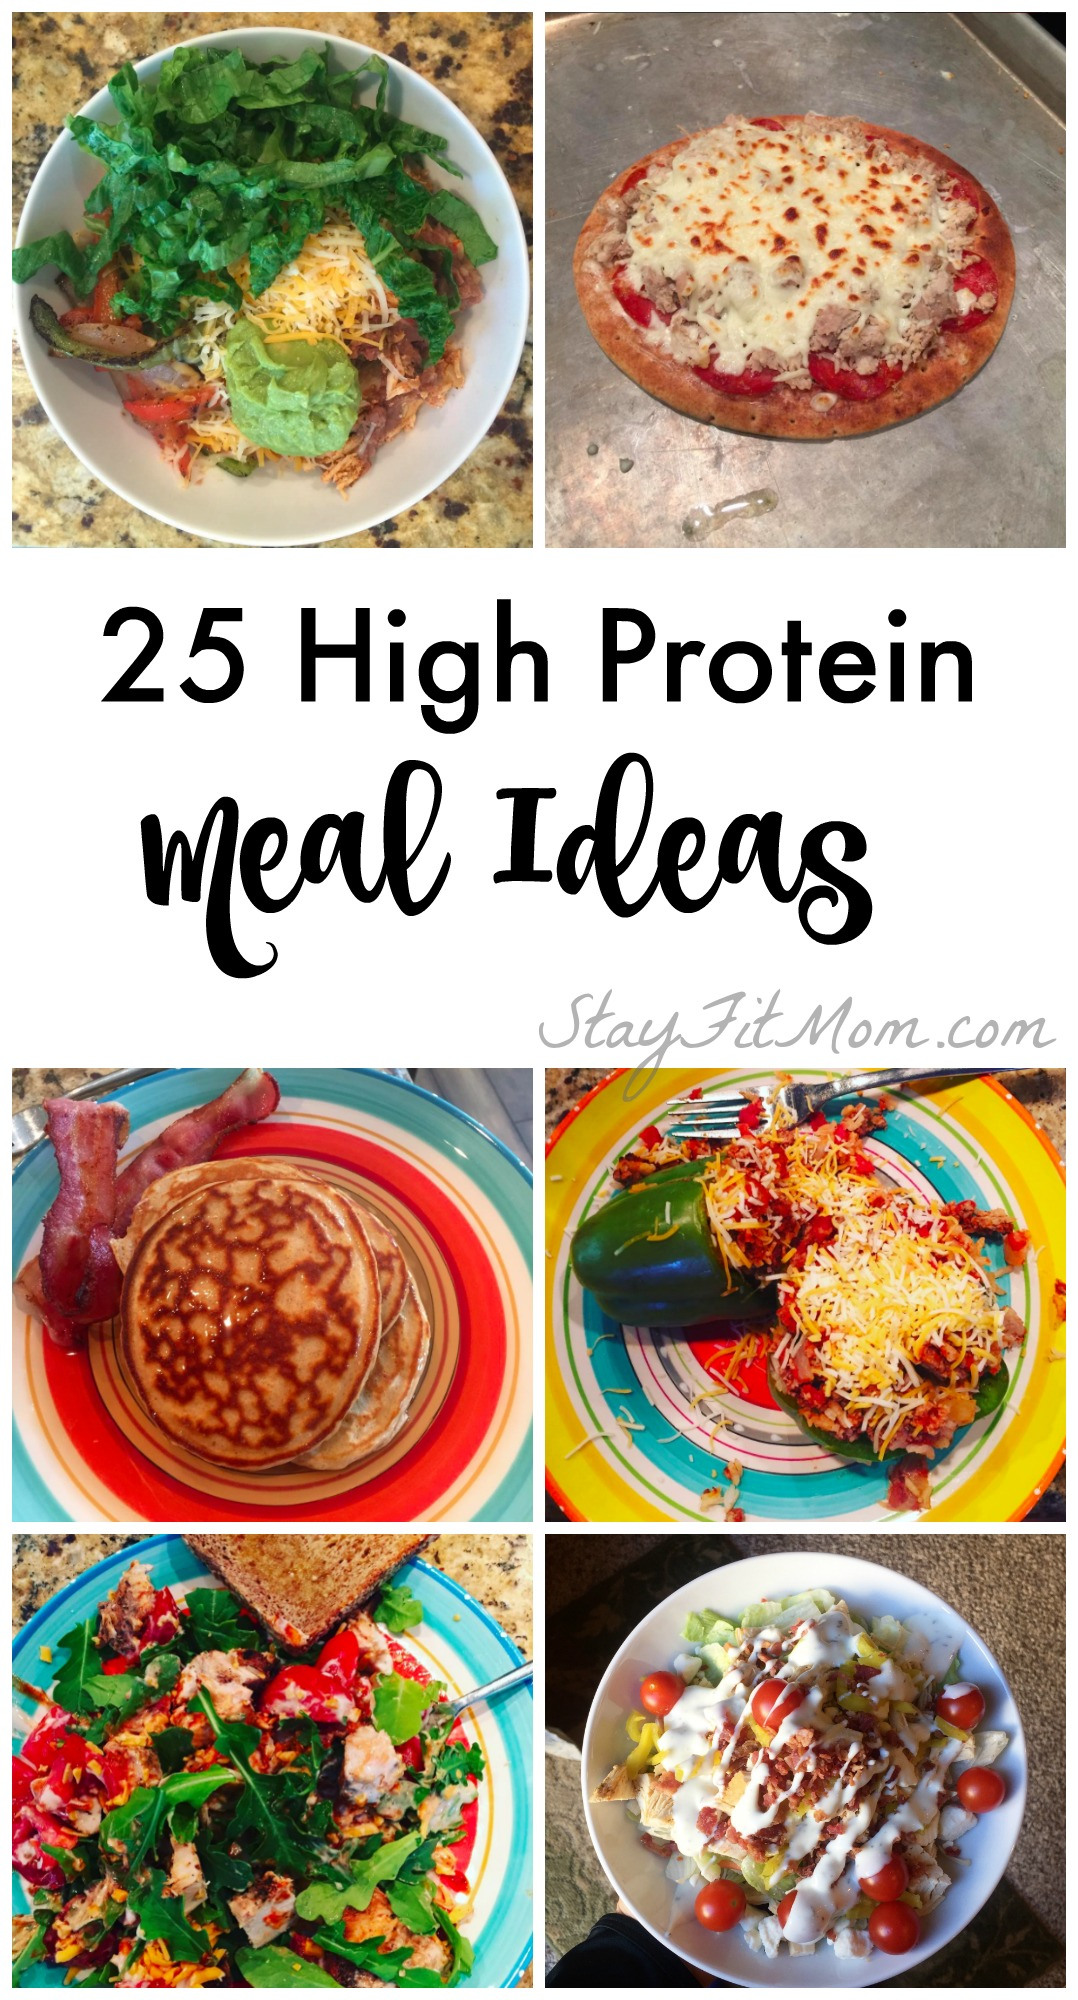 25 easy high protein meal ideas stay fit mom stay fit mom make macro counting so easy with so many ideas for high protein meals forumfinder Choice Image